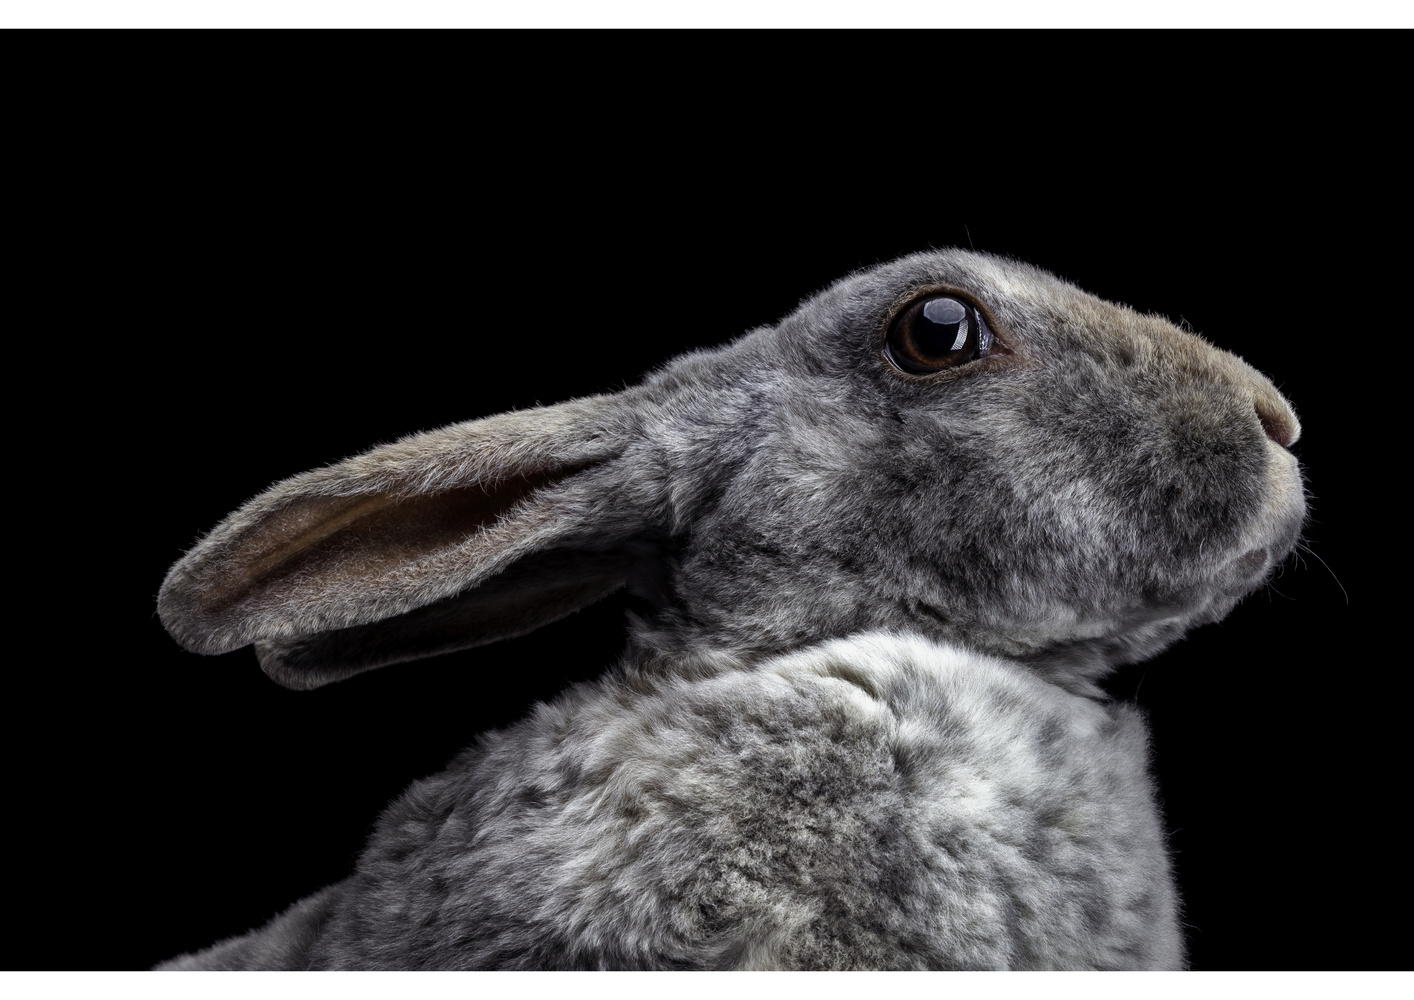 Rabbit 3 by Ben O'Connell